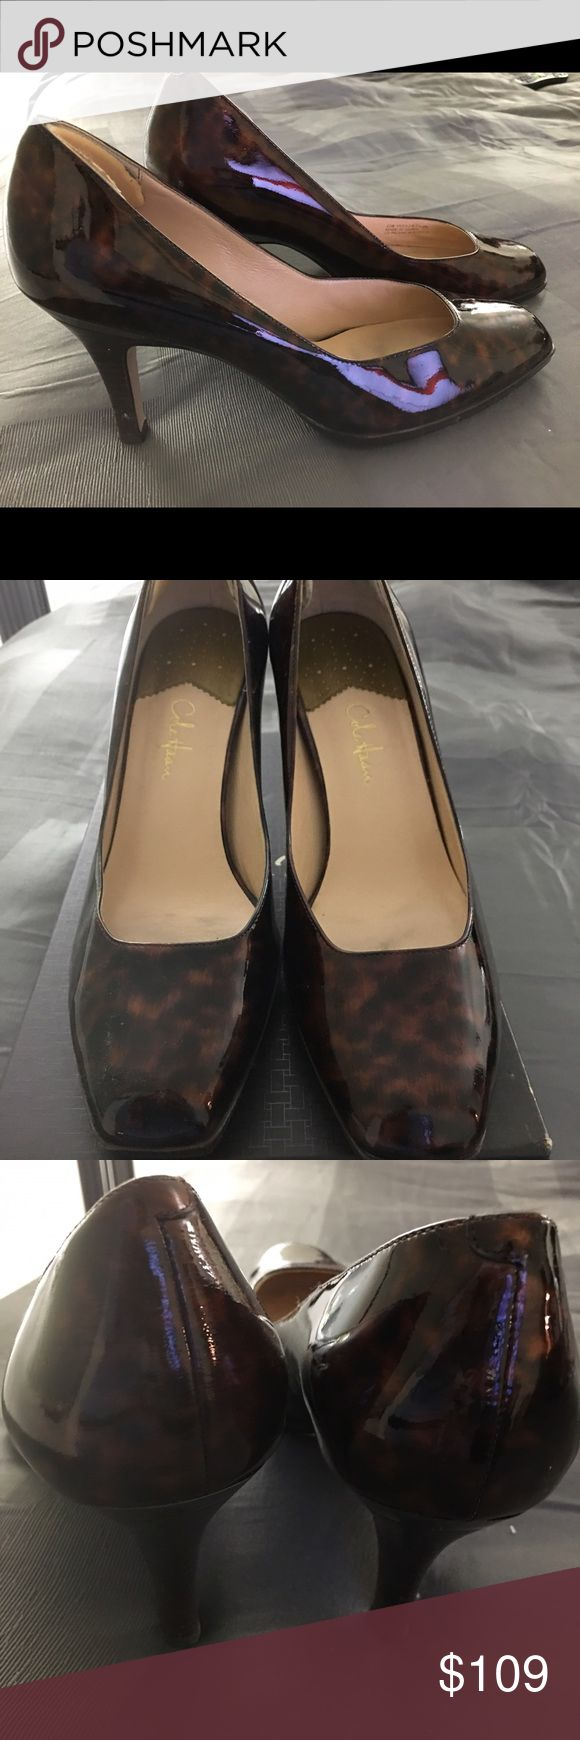 Cole Haan Size 10 Tortoise Color Patent Heel Lightly used tortoise shell patent leather heels. 2.5inch heels. Extremely comfortable. Cole Haan Shoes Heels